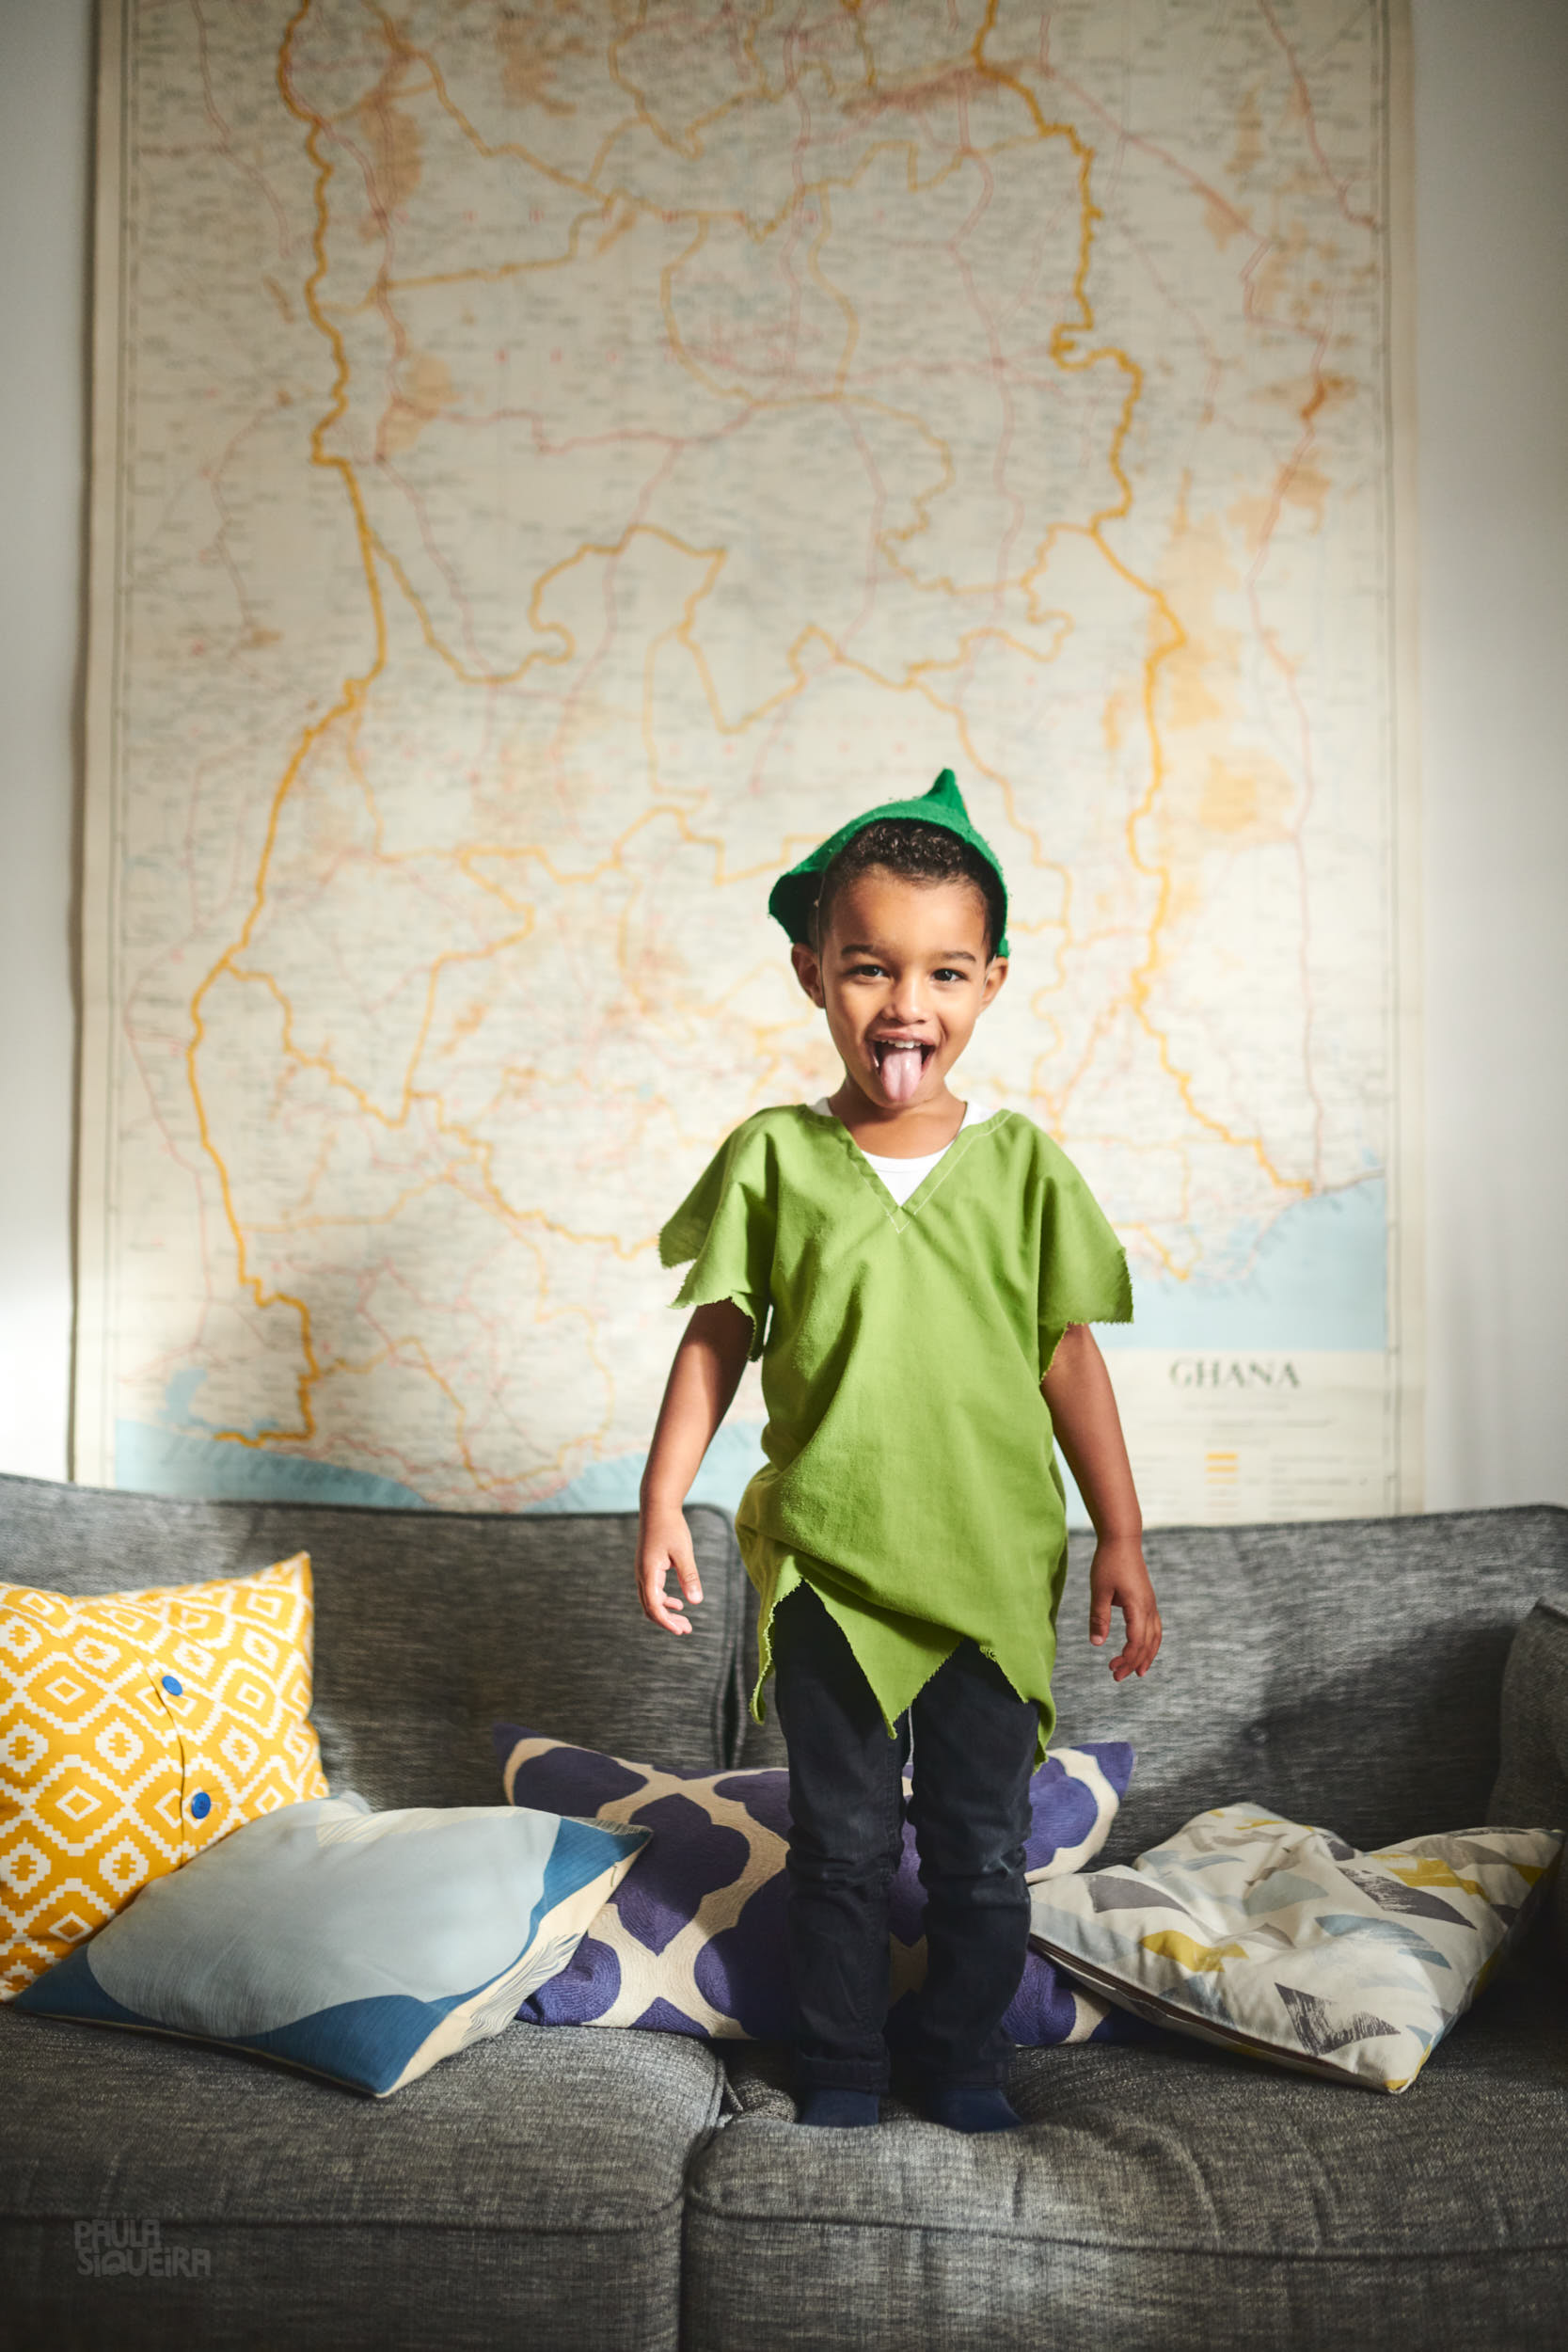 Peter Pan in front of Ghana map